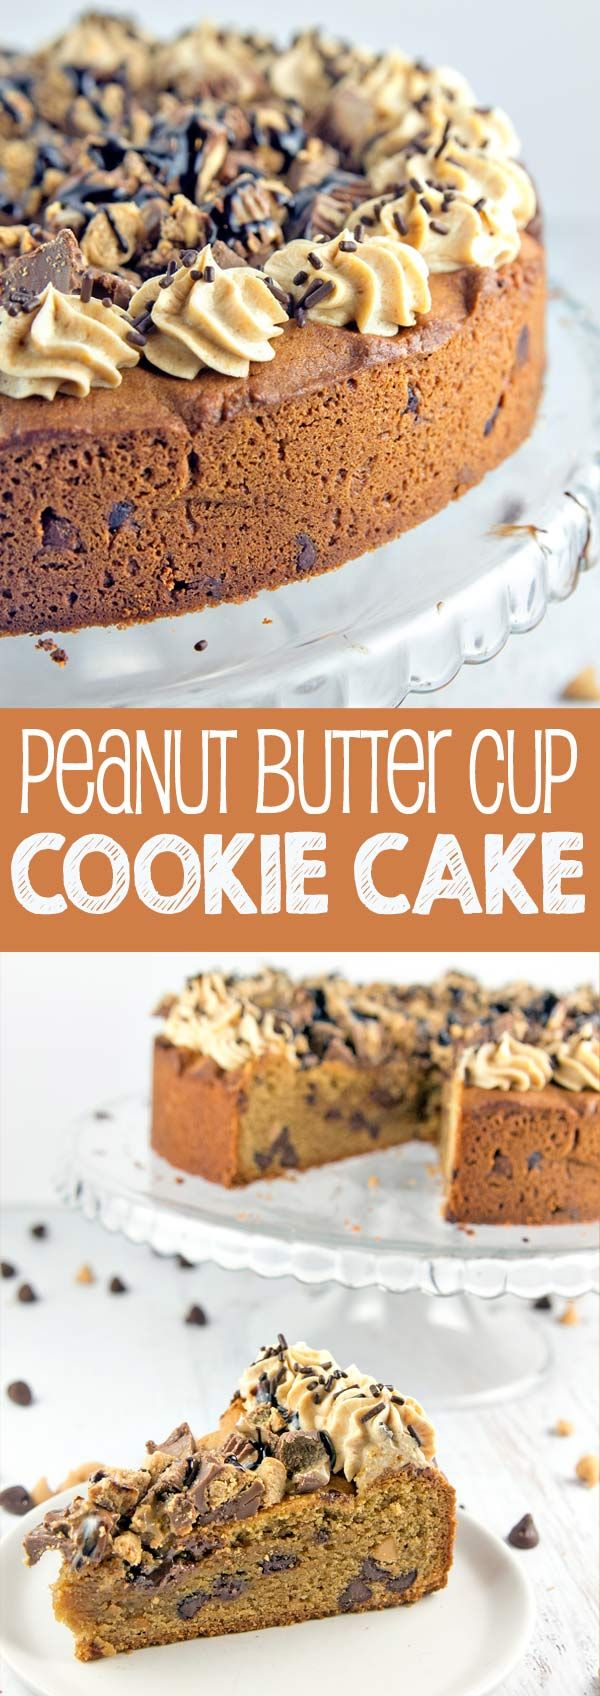 Peanut Butter Cup Cookie Cake: a peanut butter chocolate chip cookie cake, topped with whipped peanut butter ganache, chopped peanut butter cups, and chocolate and peanut butter sauces.  {Bunsen Burner Bakery}